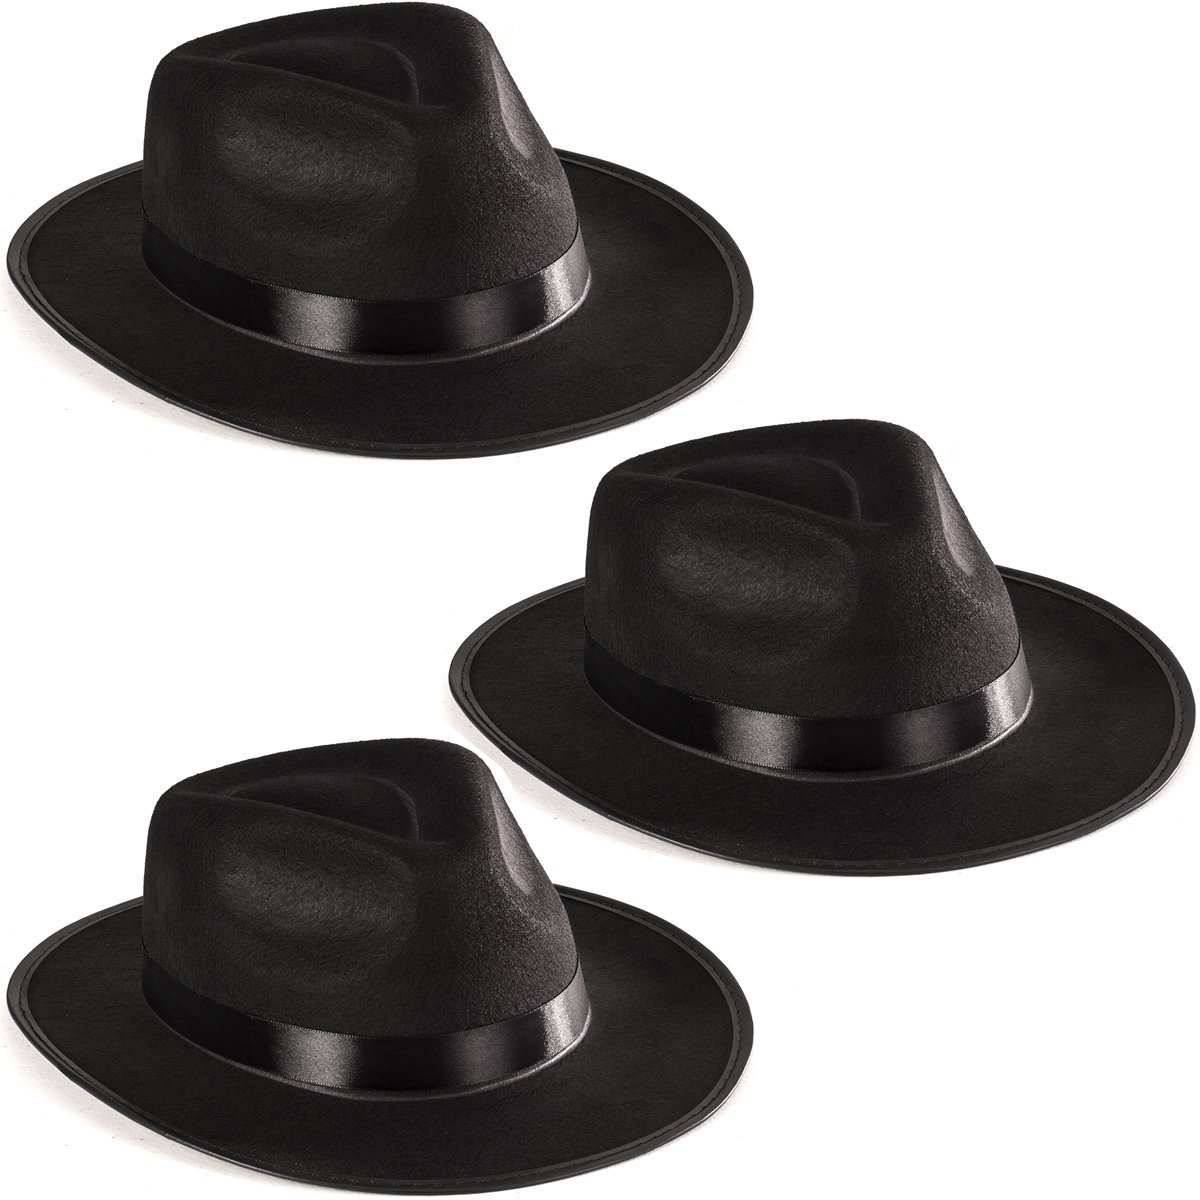 Galleon - Black Fedora Gangster Hat Costume Accessory - Pack Of 3 51bef6ded0df